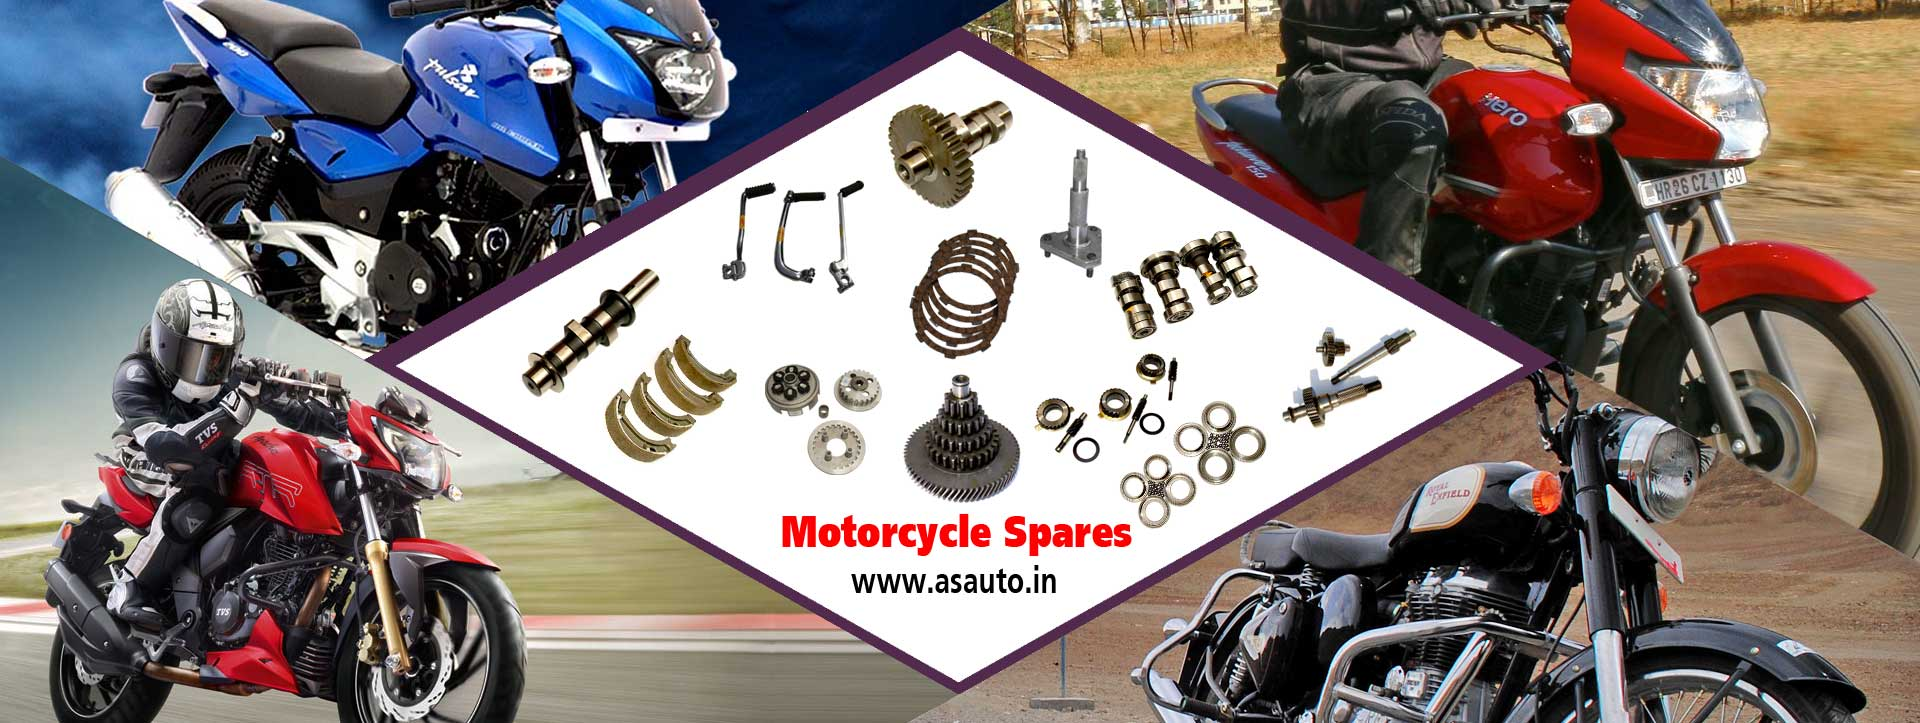 motorcycle auto parts 4 stroke bike spare parts manufacturers suppliers distributors in india punjab ludhiana